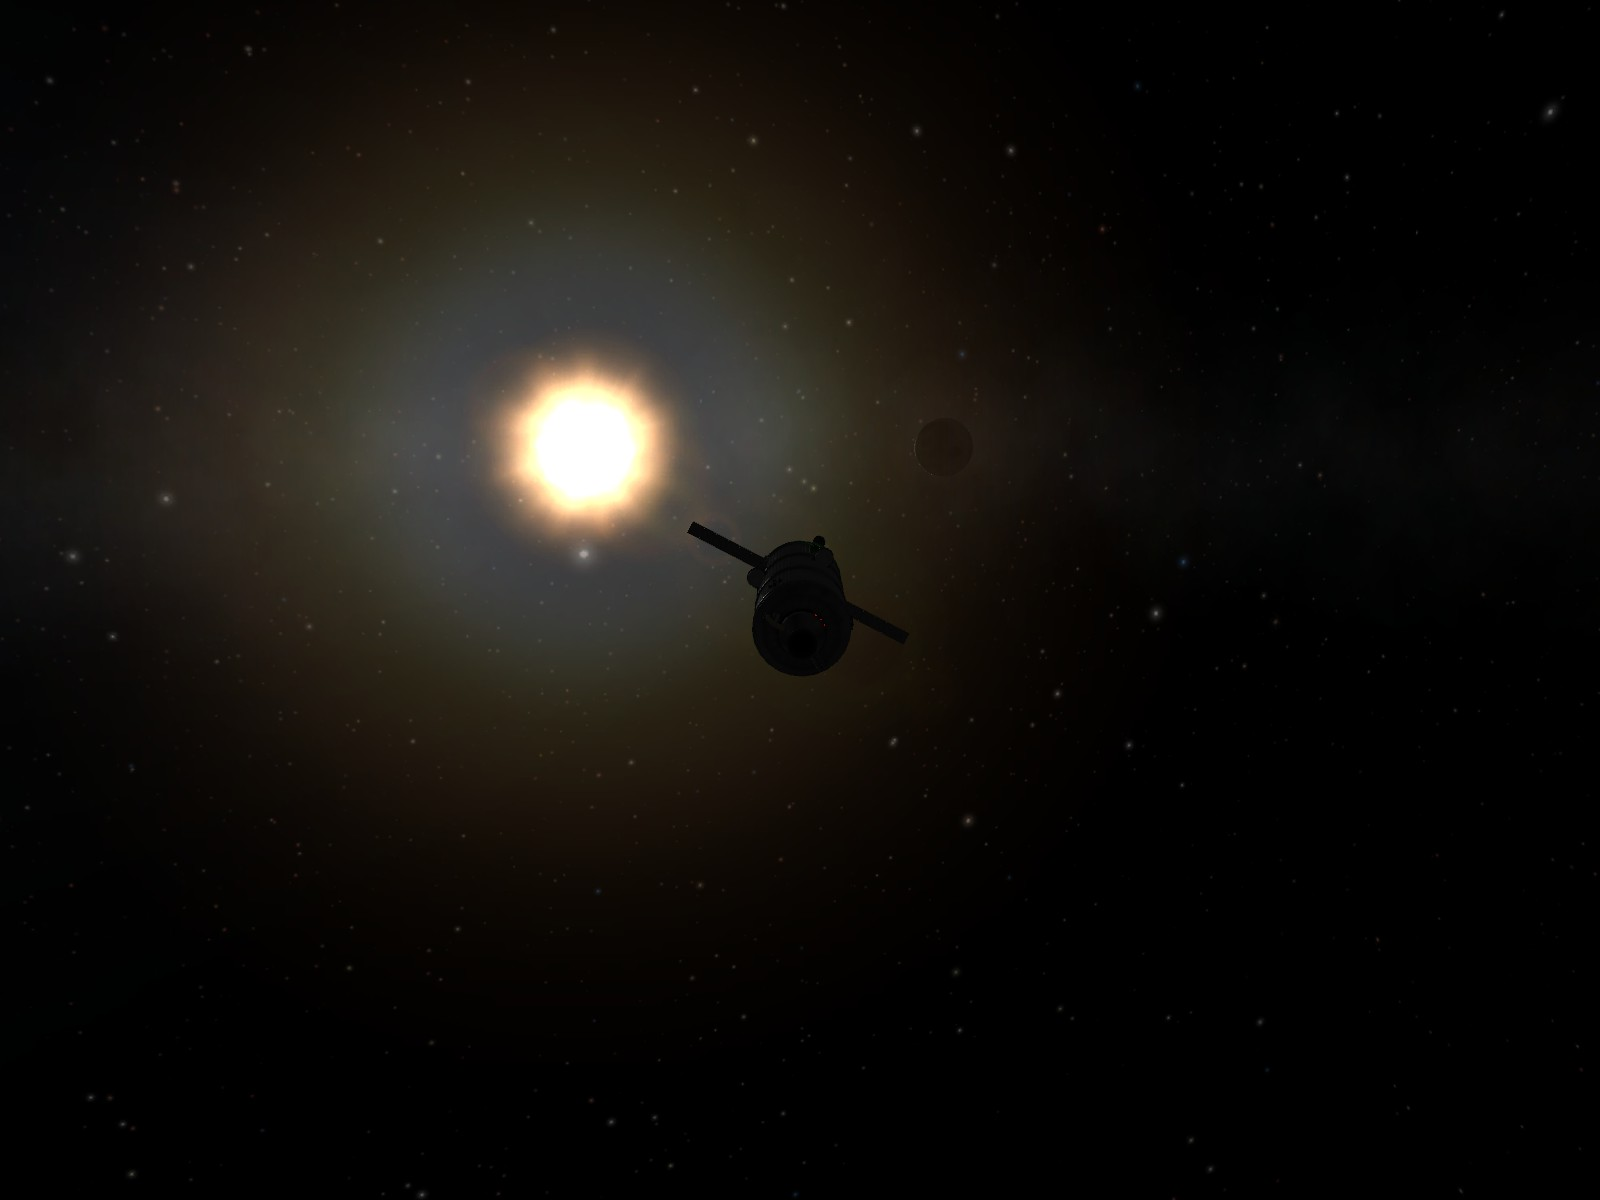 Mission to Mun